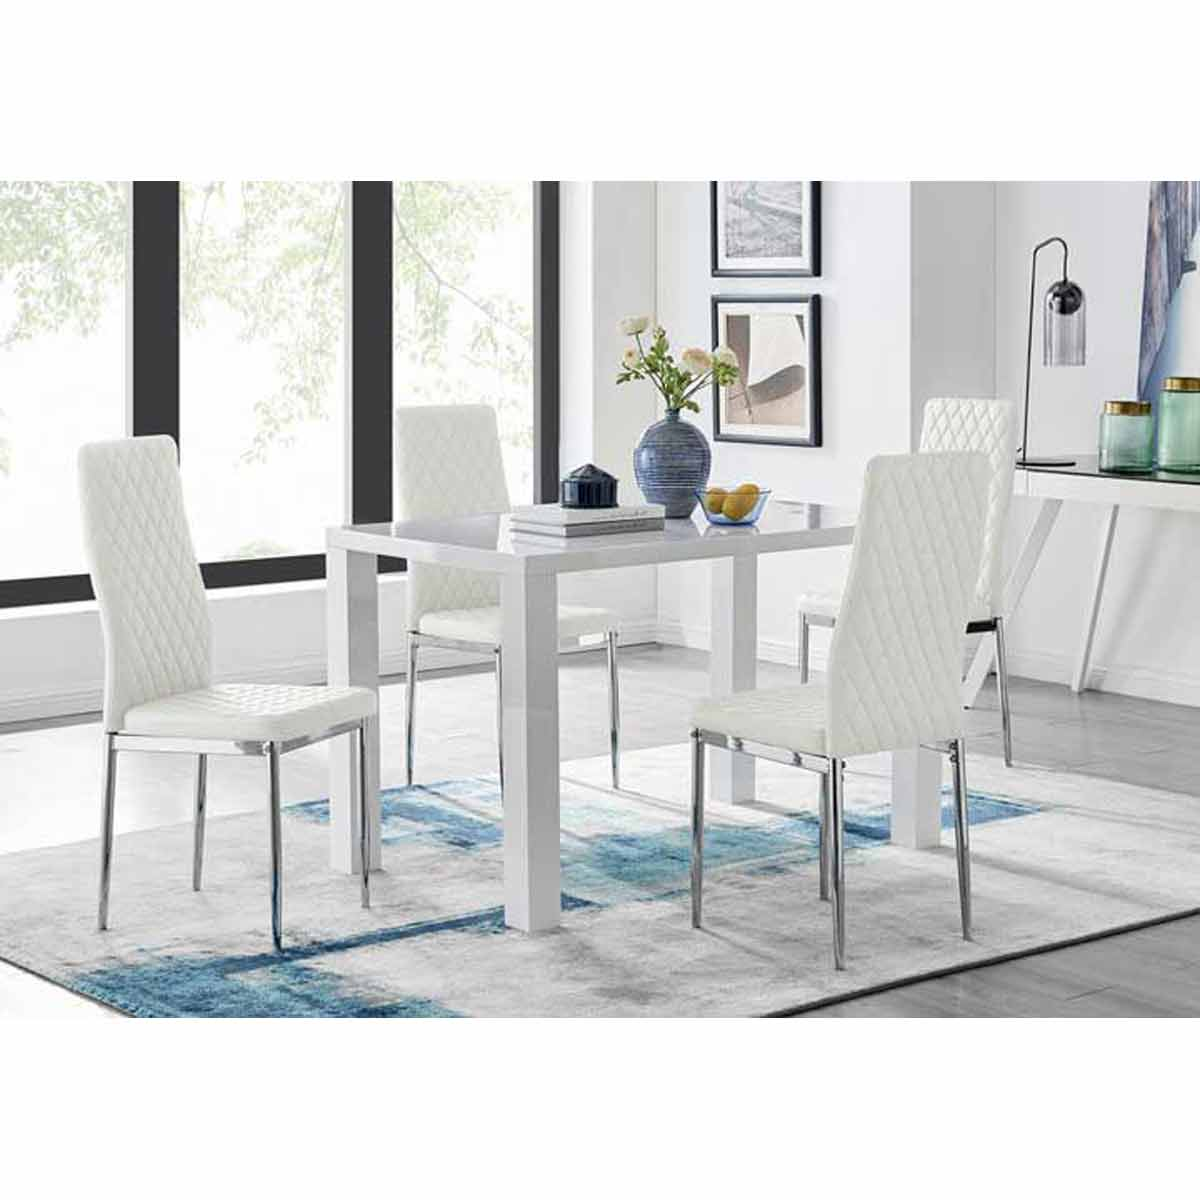 Furniture Box Pivero White High Gloss Dining Table and 4 White Milan Chairs Set